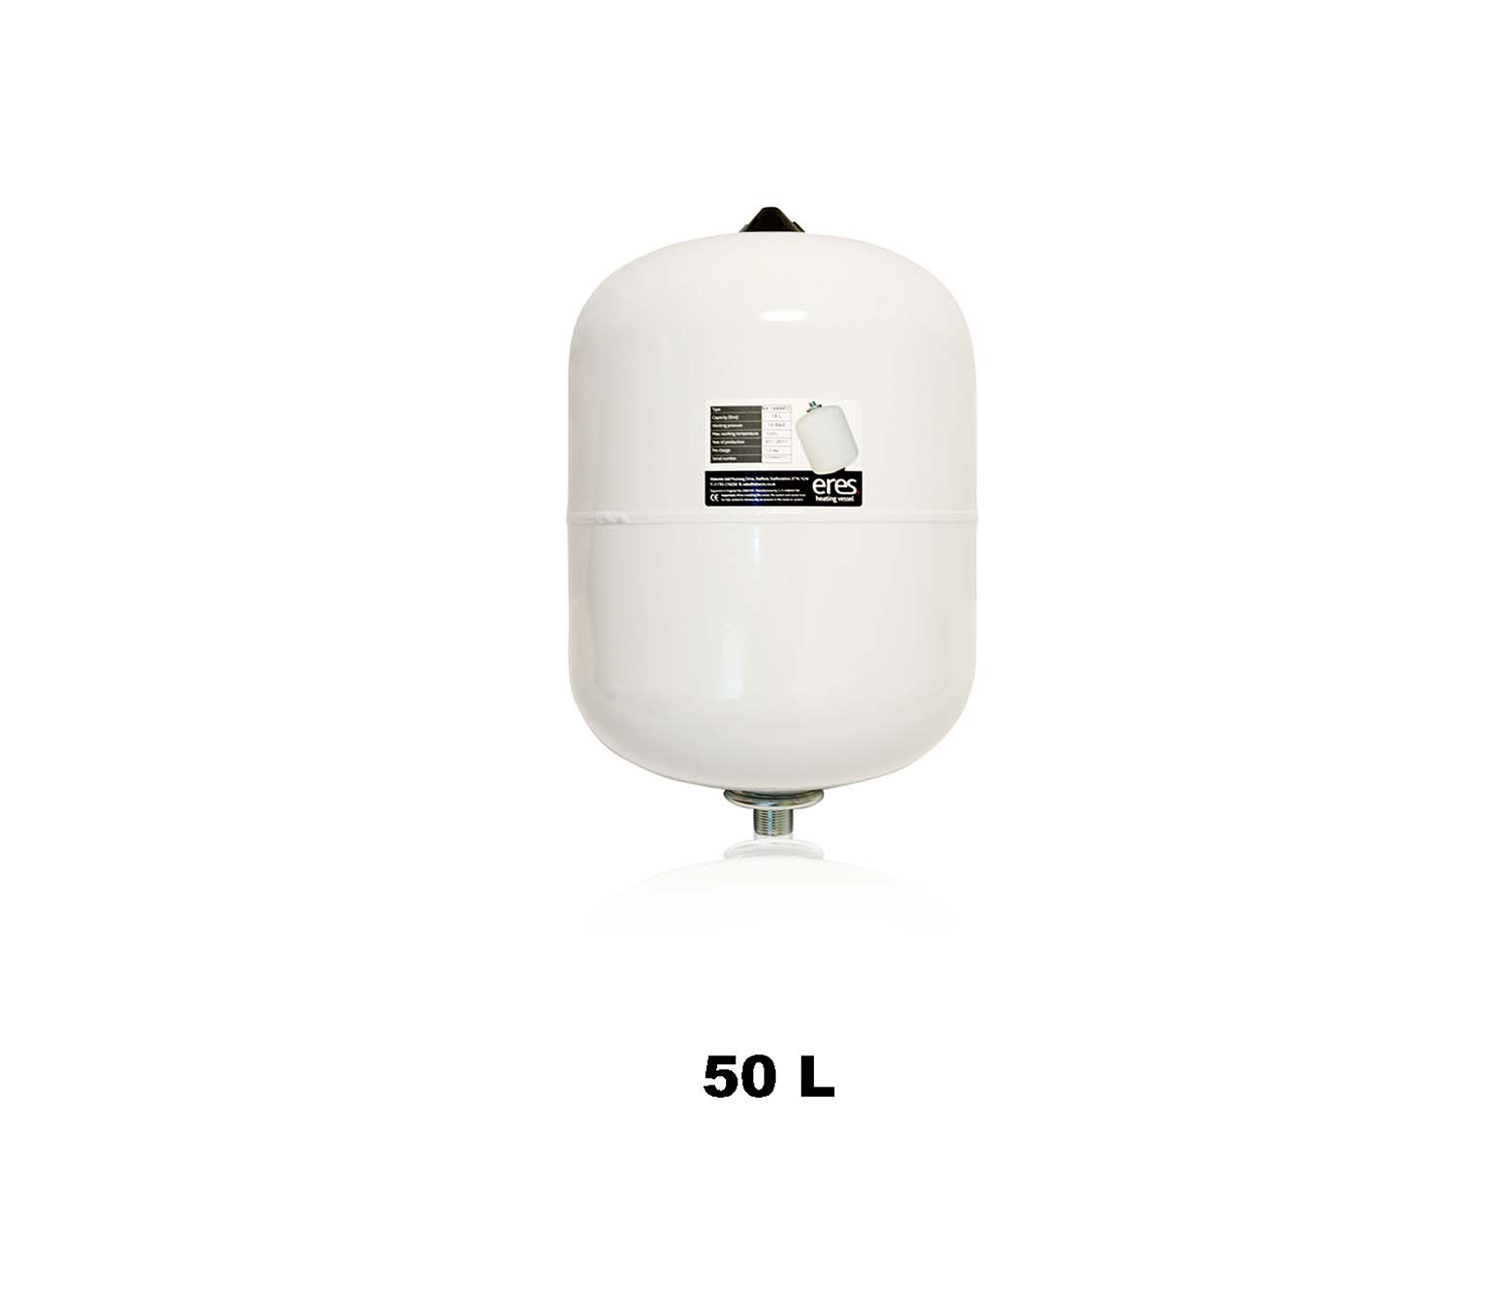 Solar_expansion_Vessel_50L_high_temp.jpg